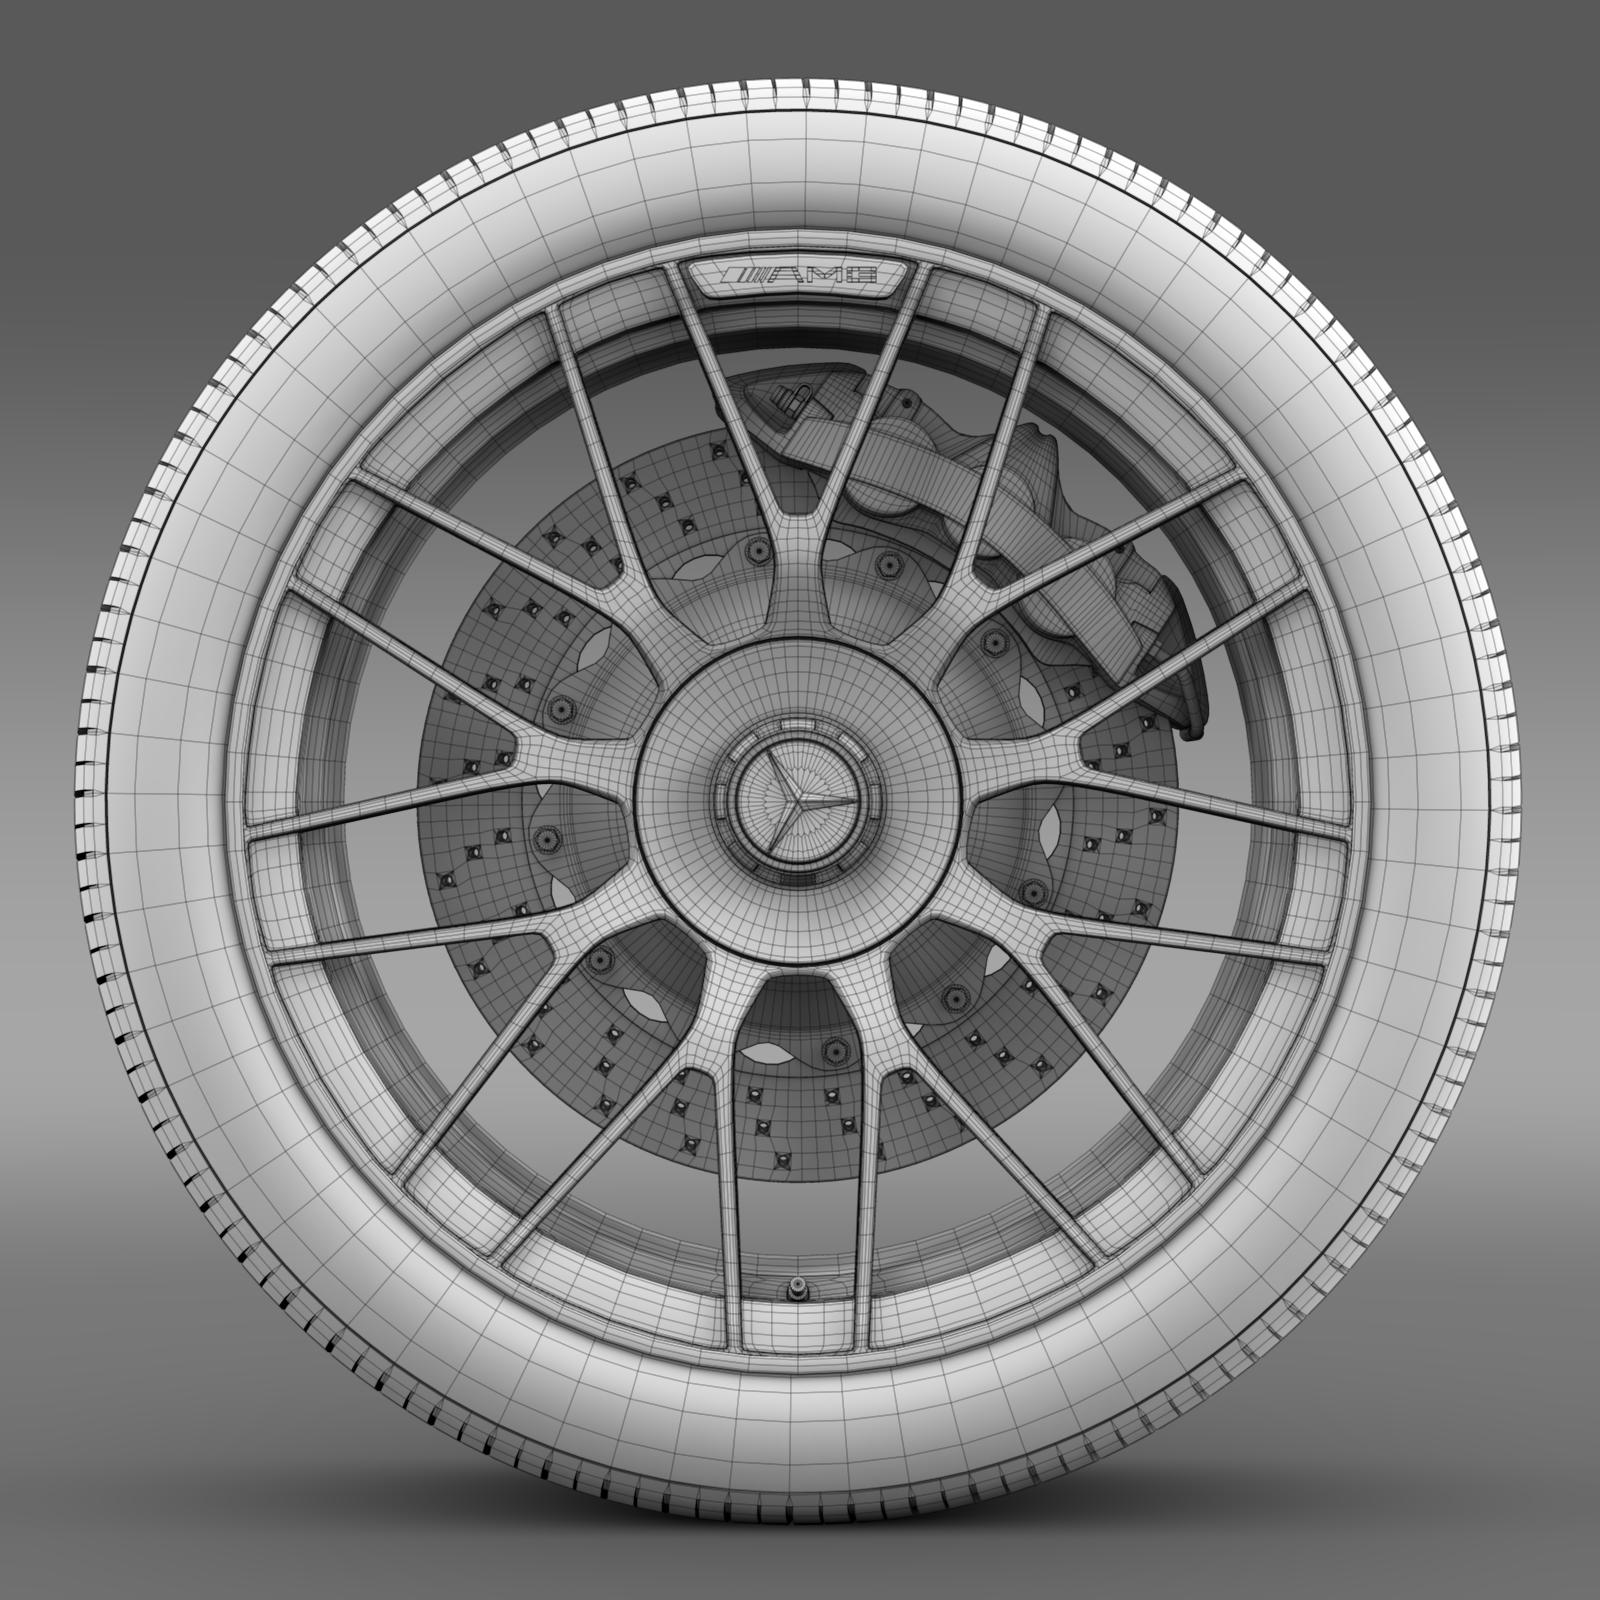 mercedes amg c 63 s edition wheel 3d model 3ds max fbx c4d lwo ma mb hrc xsi obj 210750